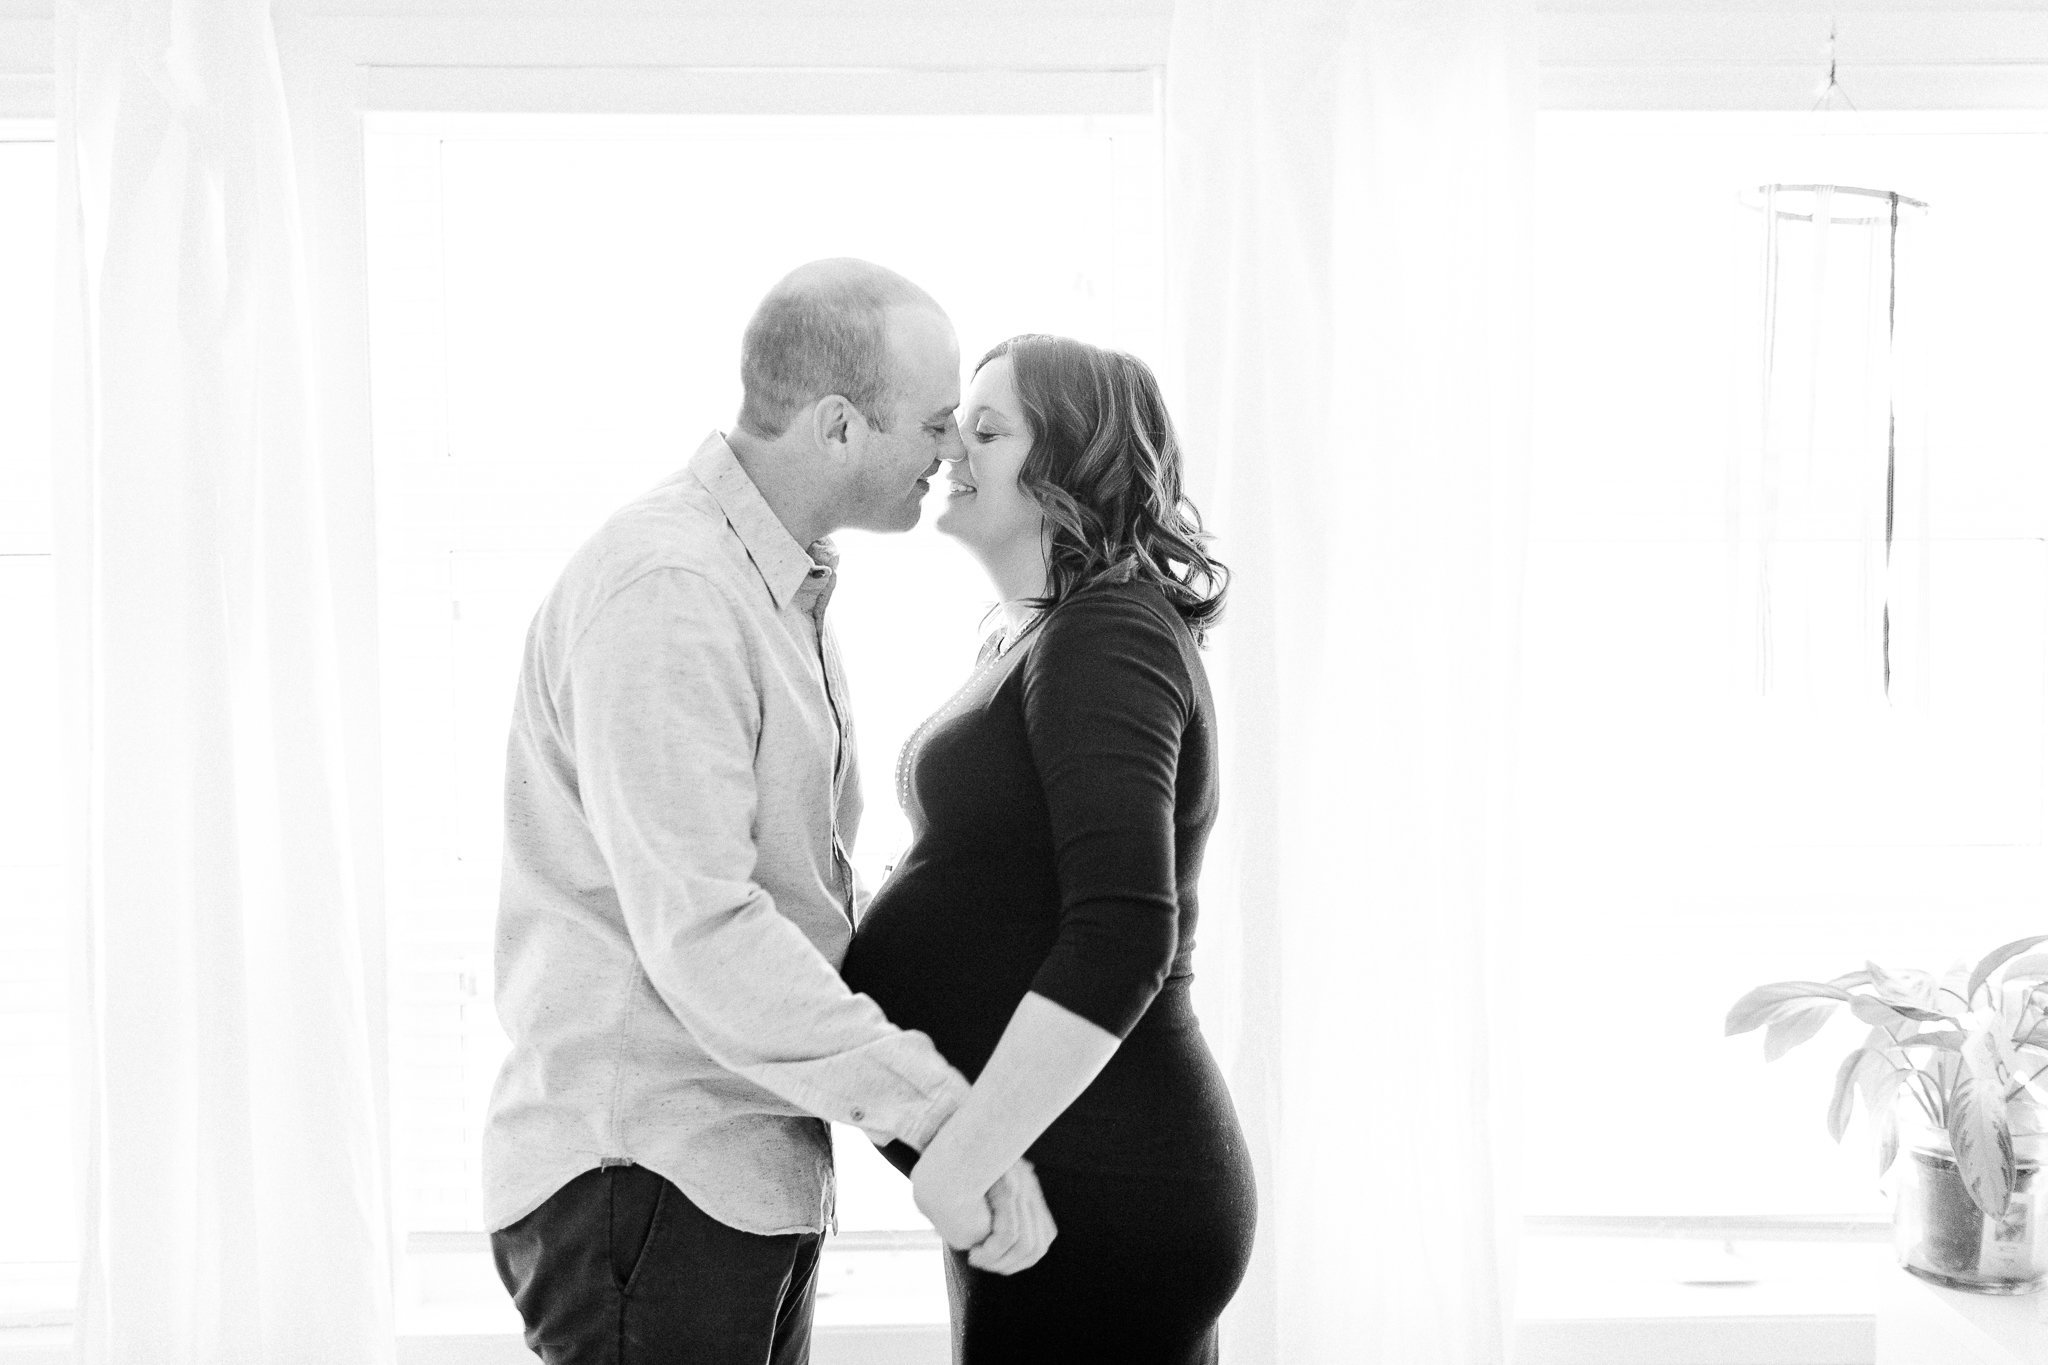 photographe-maternite-famille-montreal-lisa-renault-photographie-maternity-family-photographer-32